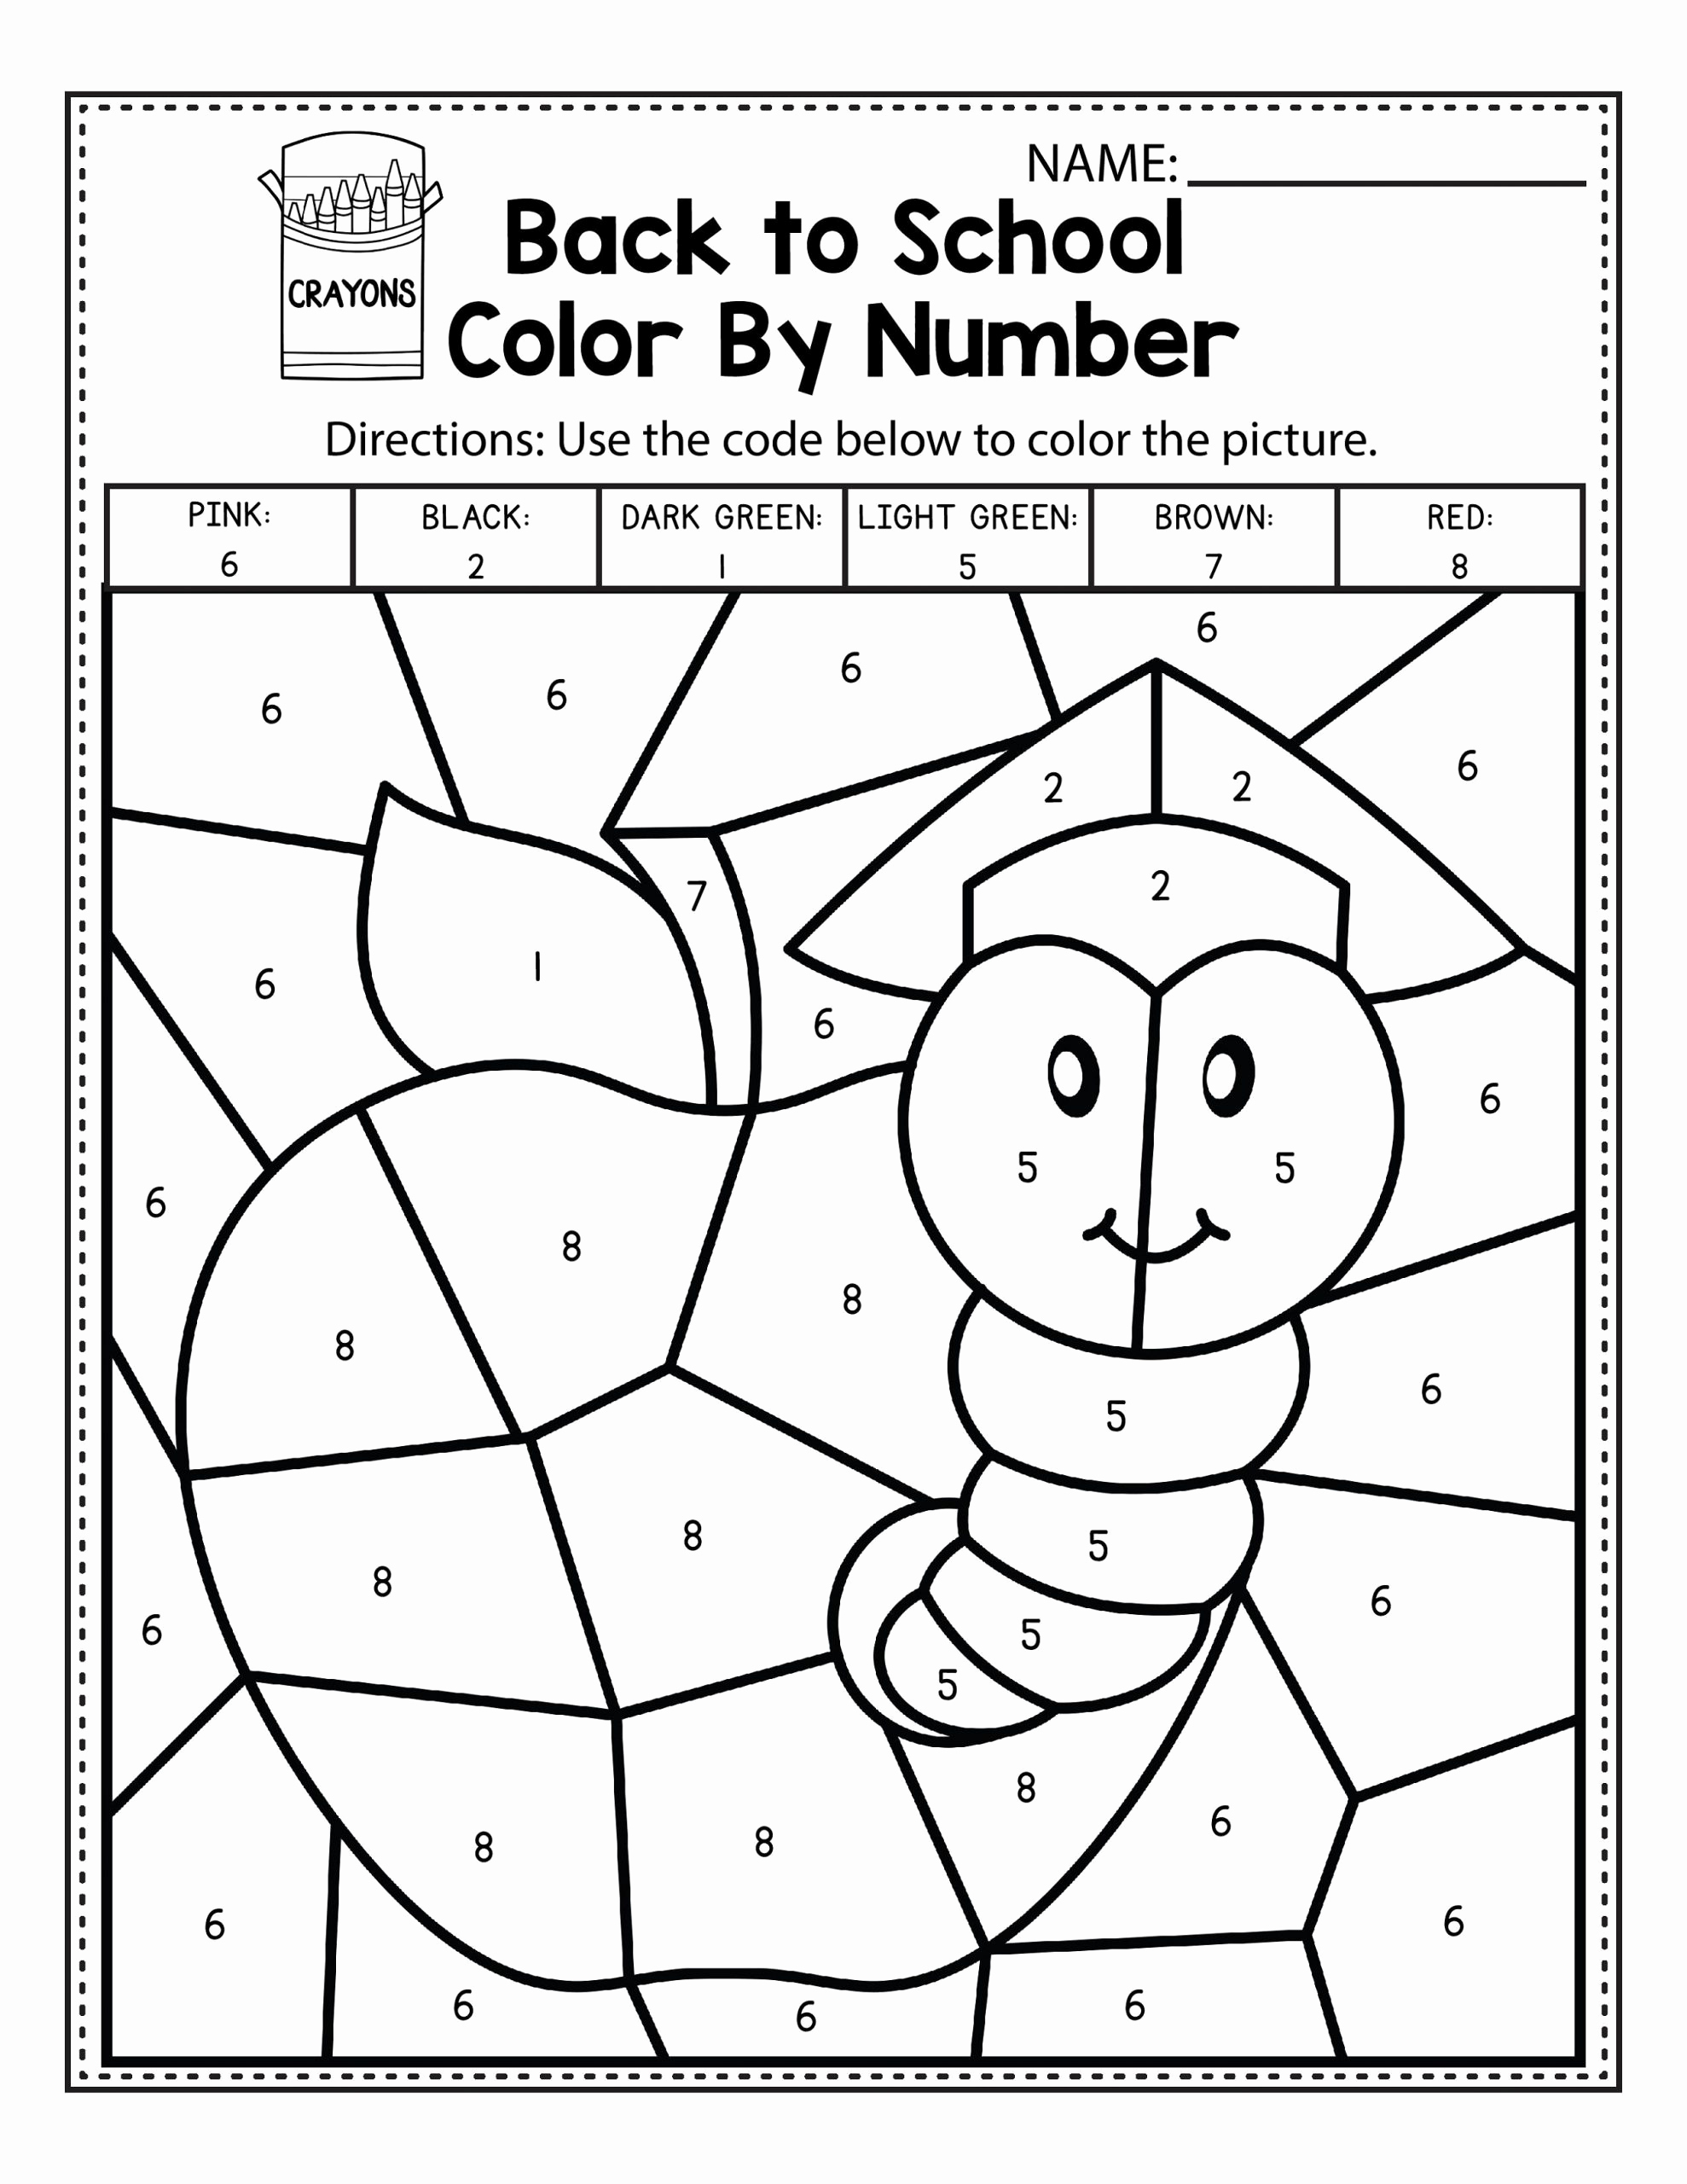 Easy Color by Number Worksheets Best Of Easy Color by Number Worksheets for Kindergarten